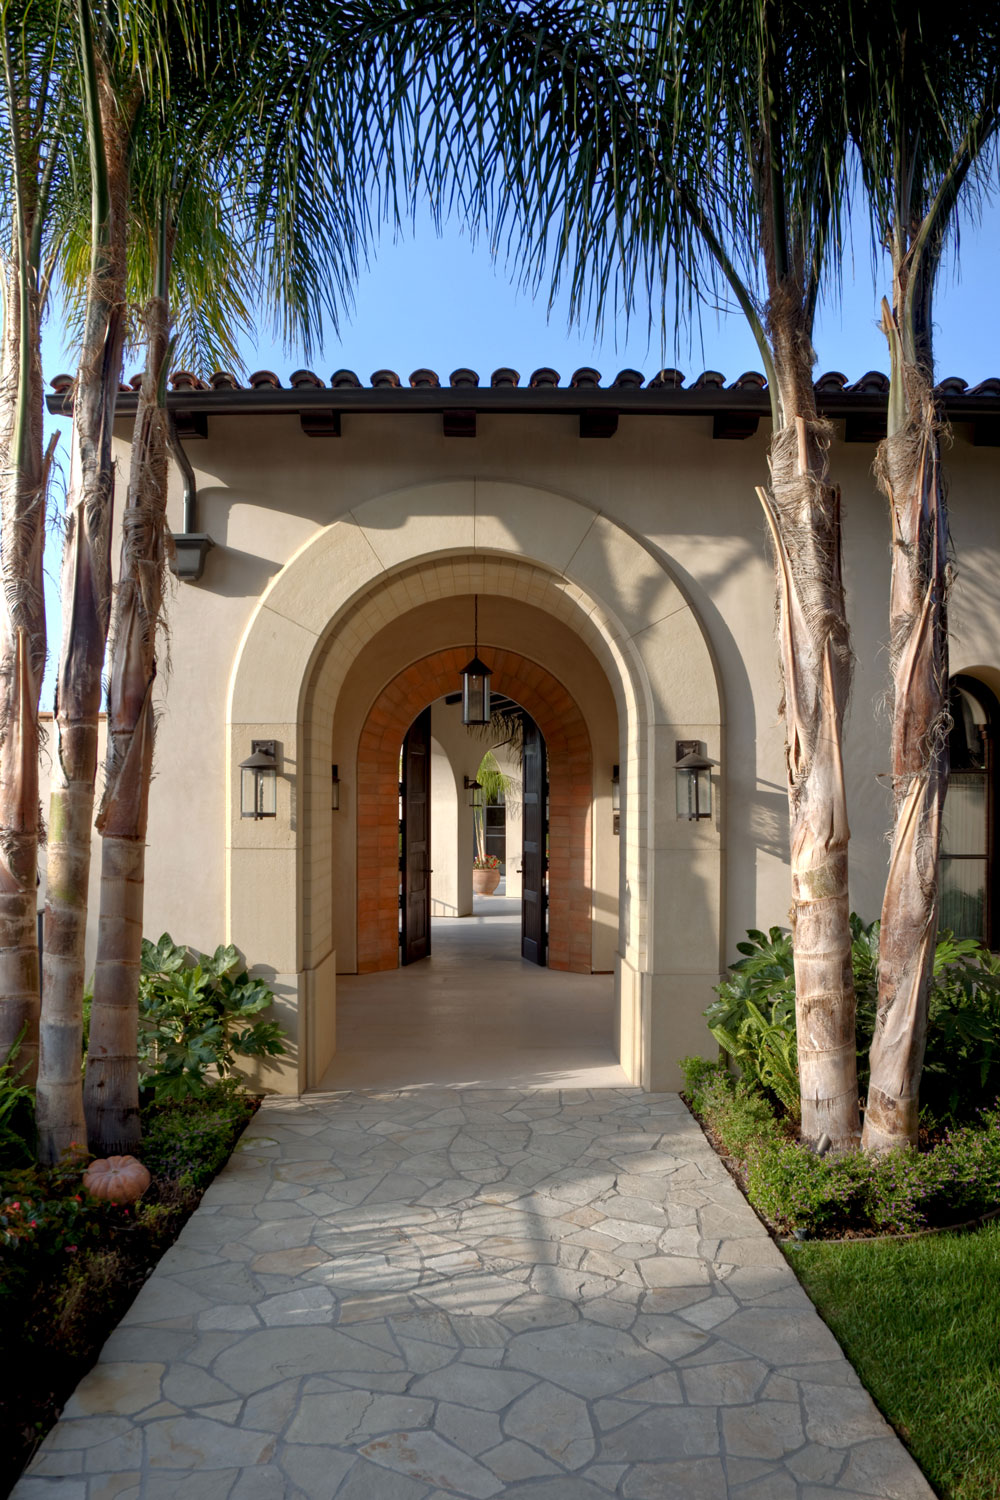 Contemporary-Spanish-Flagstone-Walkway-Arched-Doorway-Courtyard-Corbin-Reeves.jpg